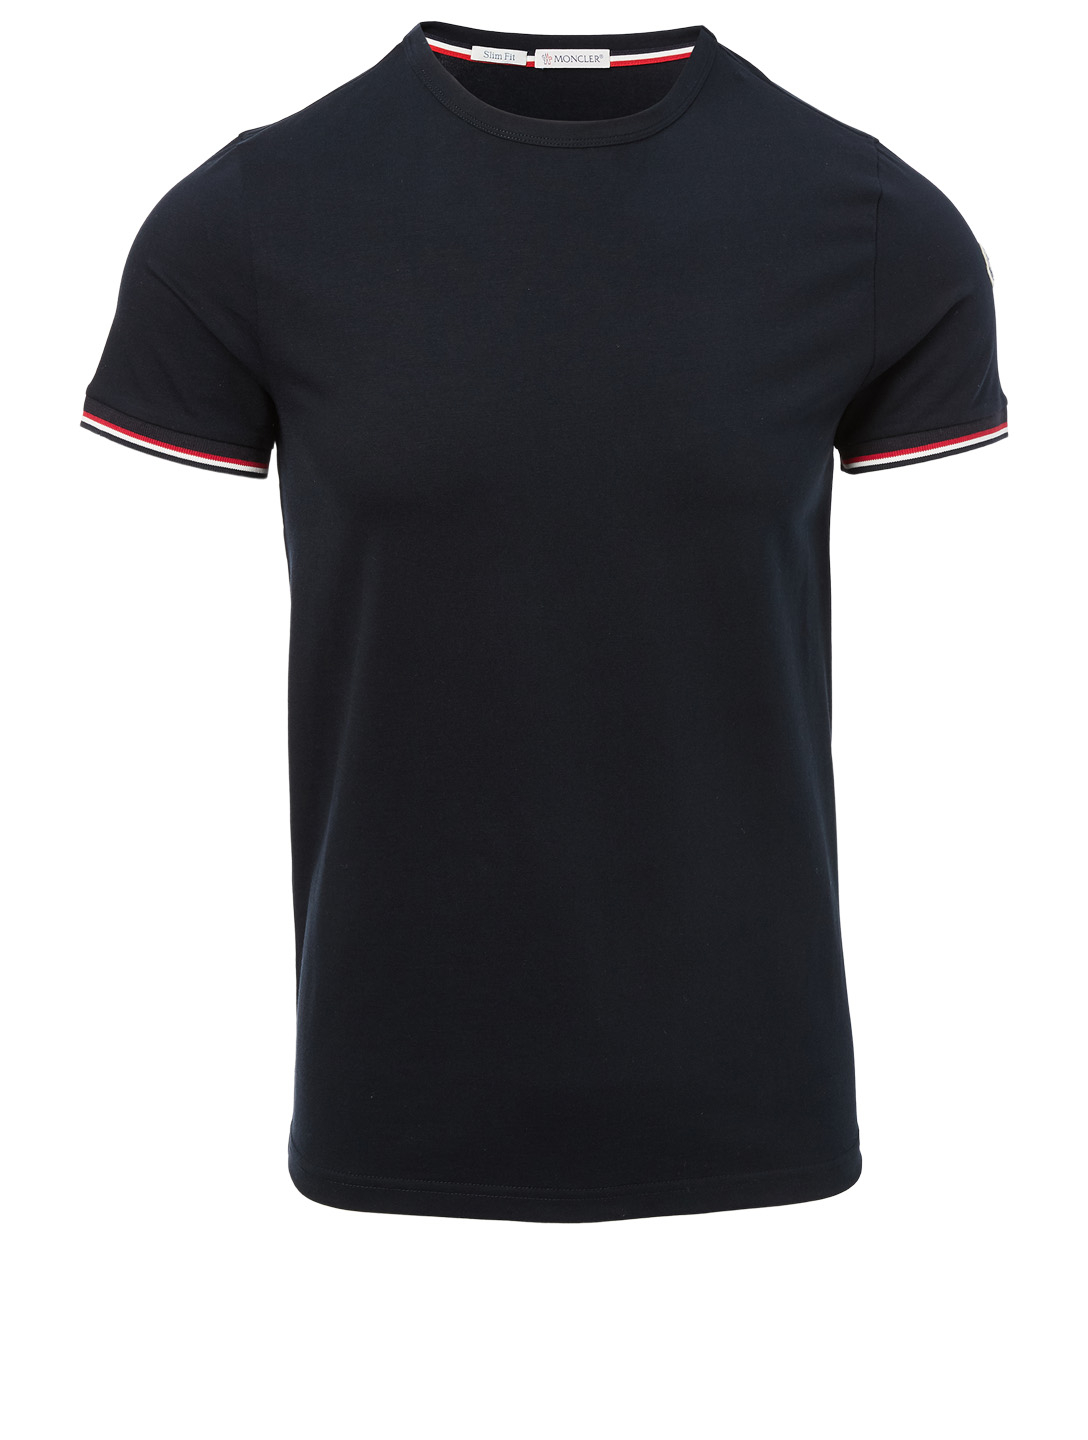 MONCLER T-Shirt With Stripe Trim Men's Blue